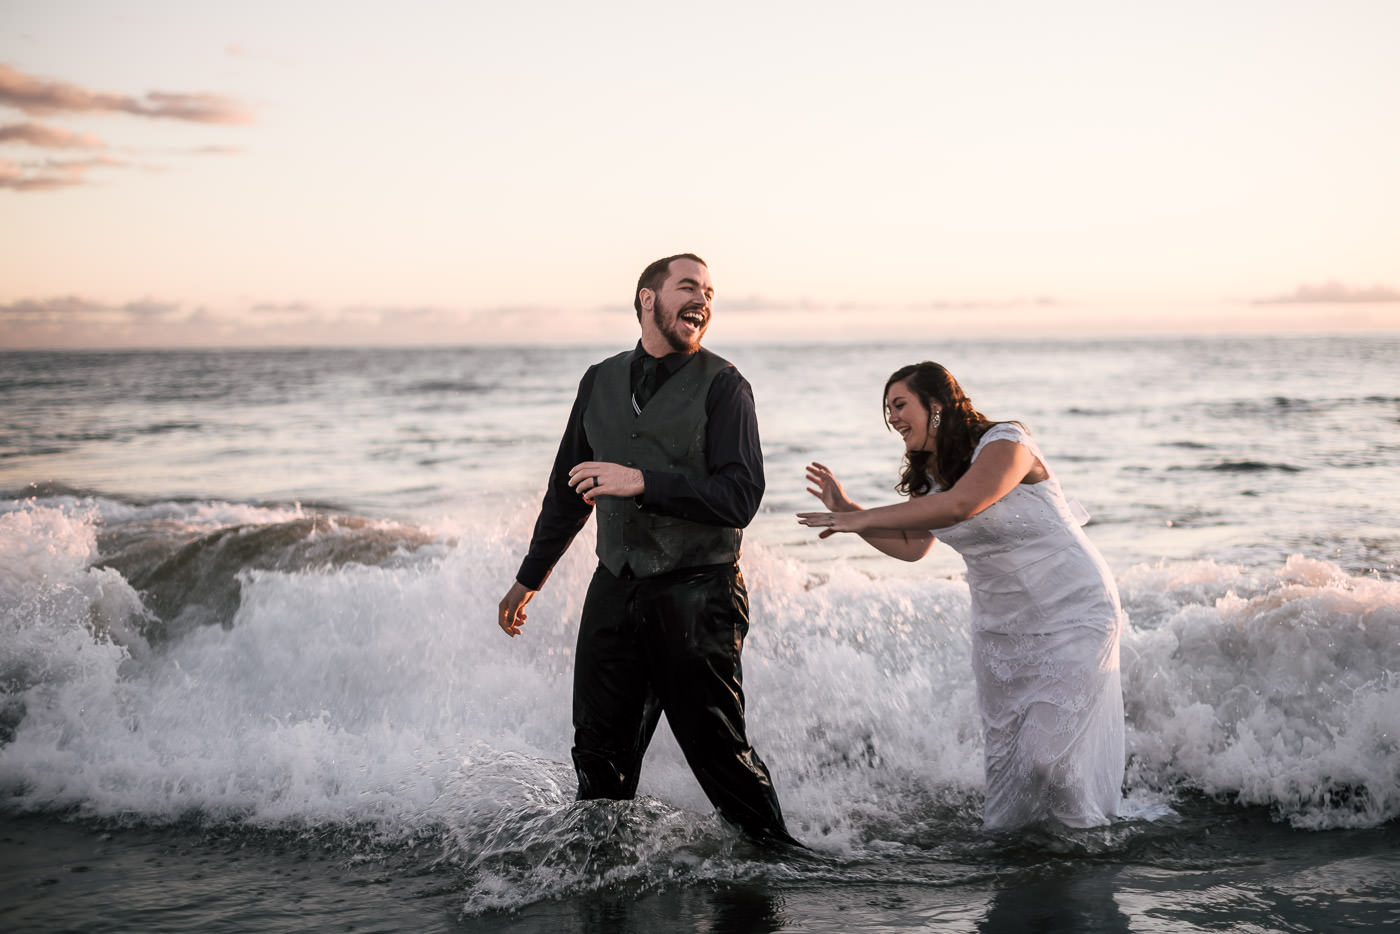 The secret to having an unforgettable elopement and creating jaw dropping photos with your photographer is having lots of fun. Having a good time will make you feel far more comfortable in front of the camera. So don't feel like you have to be serious, loosen up and have a good time. The more fun you have...